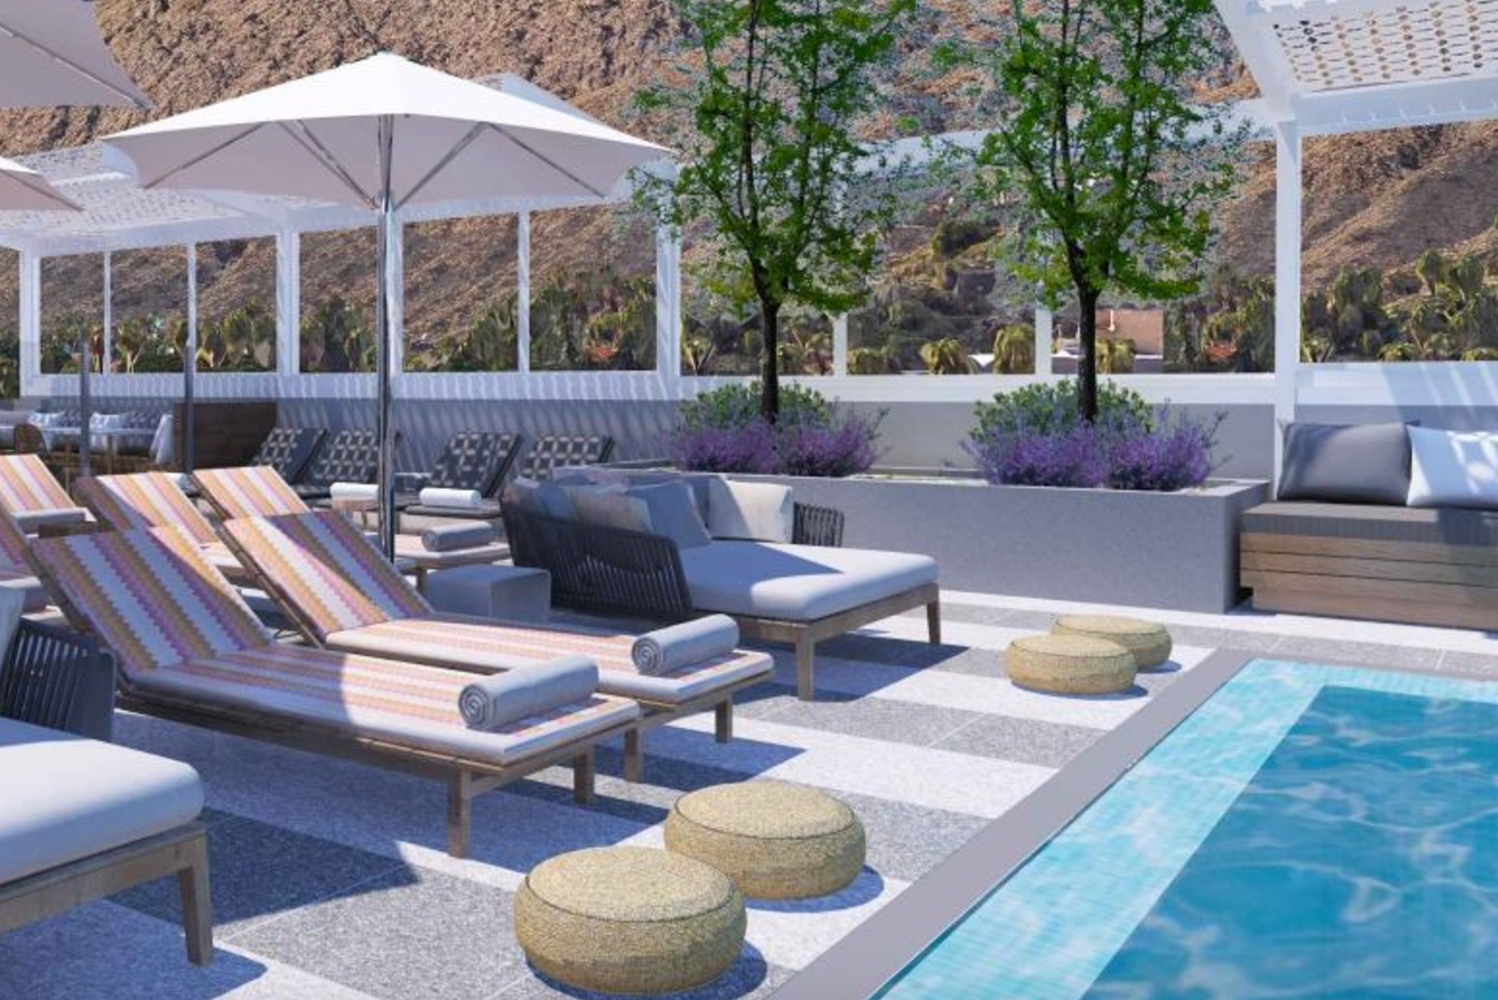 At the rooftop, six cabanas will line the pool.